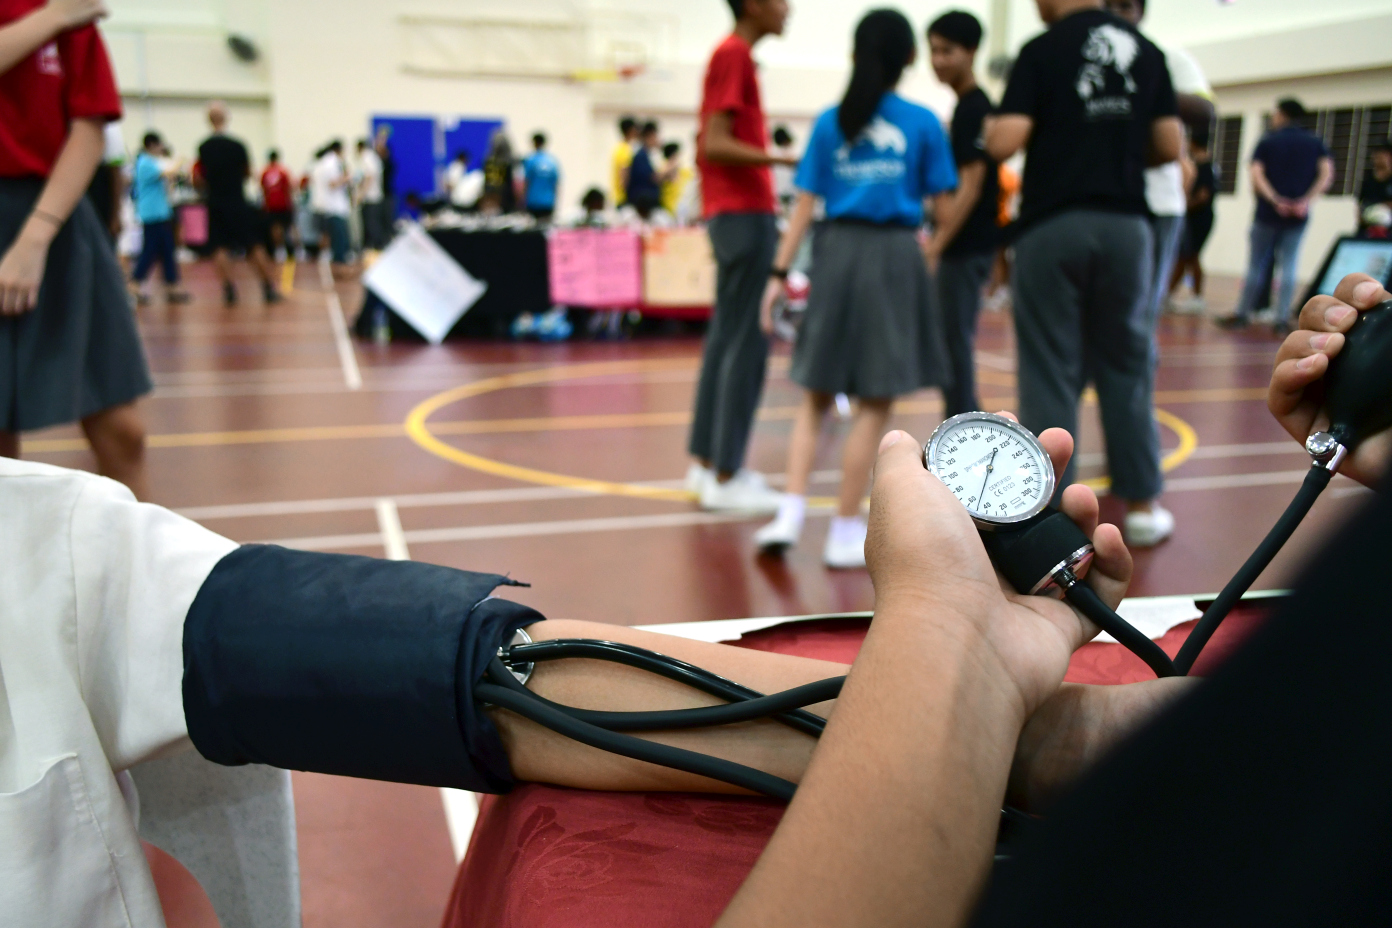 Taking blood pressure with a stethoscope and sphygmomanometer